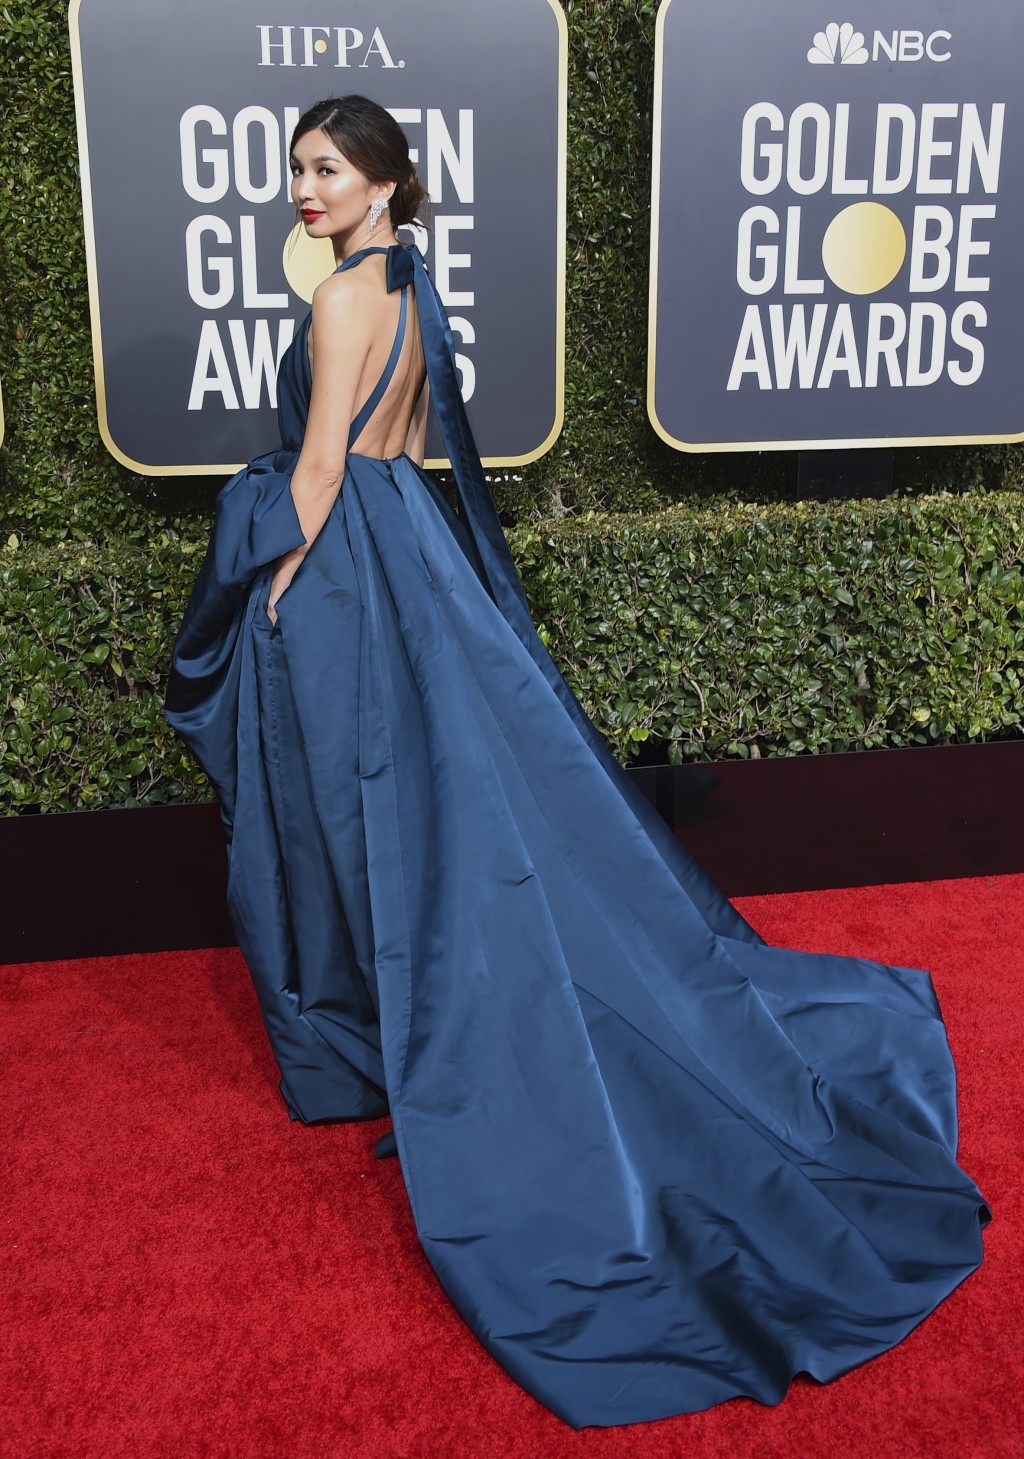 Gemma Chan arrives at the 76th annual Golden Globe Awards at the Beverly Hilton Hotel on Sunday, Jan. 6, 2019, in Beverly Hills, Calif. (Photo by Jord